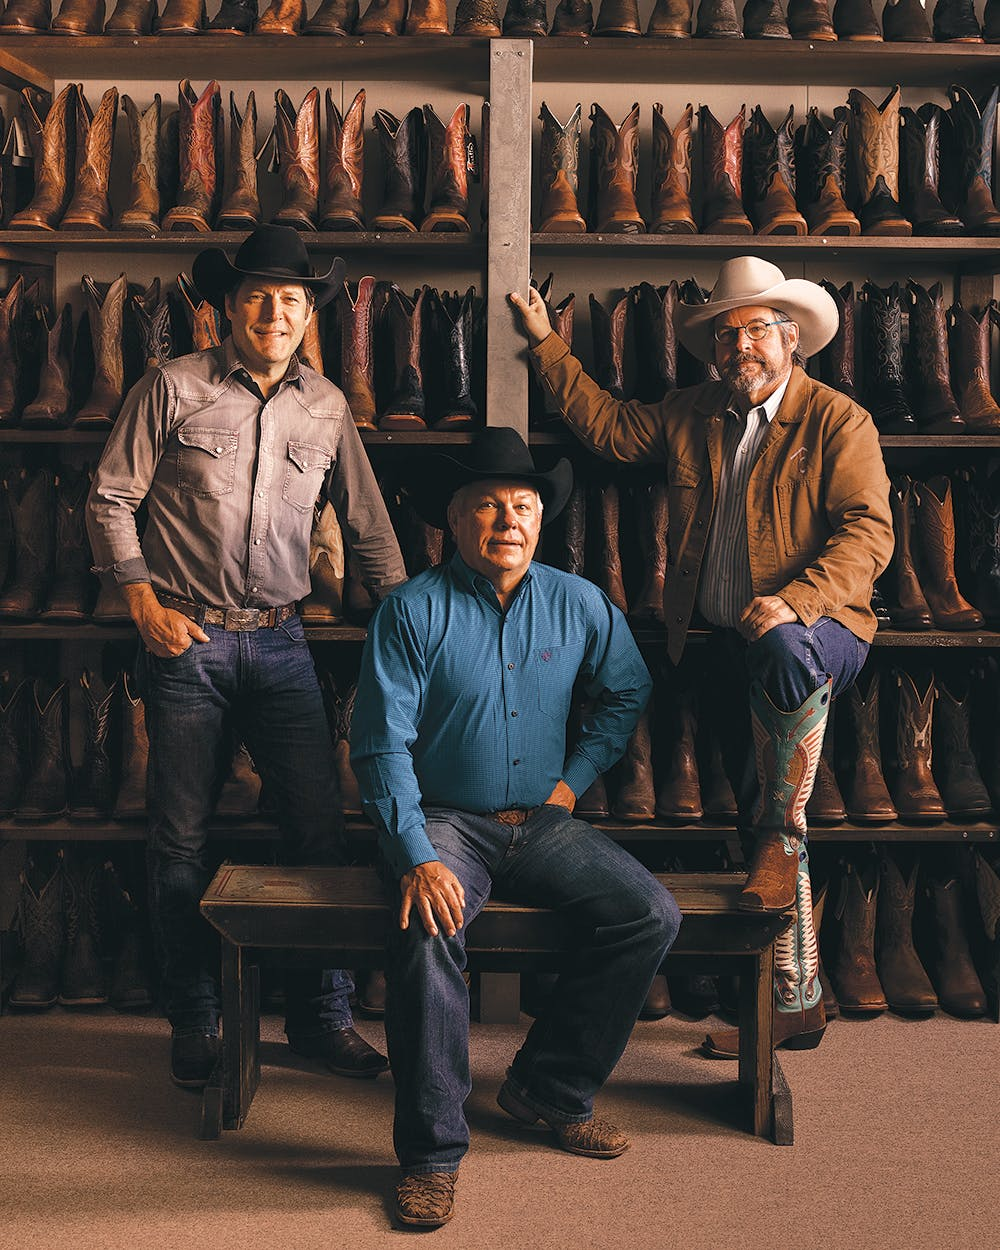 Clay in Lucchese boots, Joe in Old Gringos, and Mike in Rocketbusters.